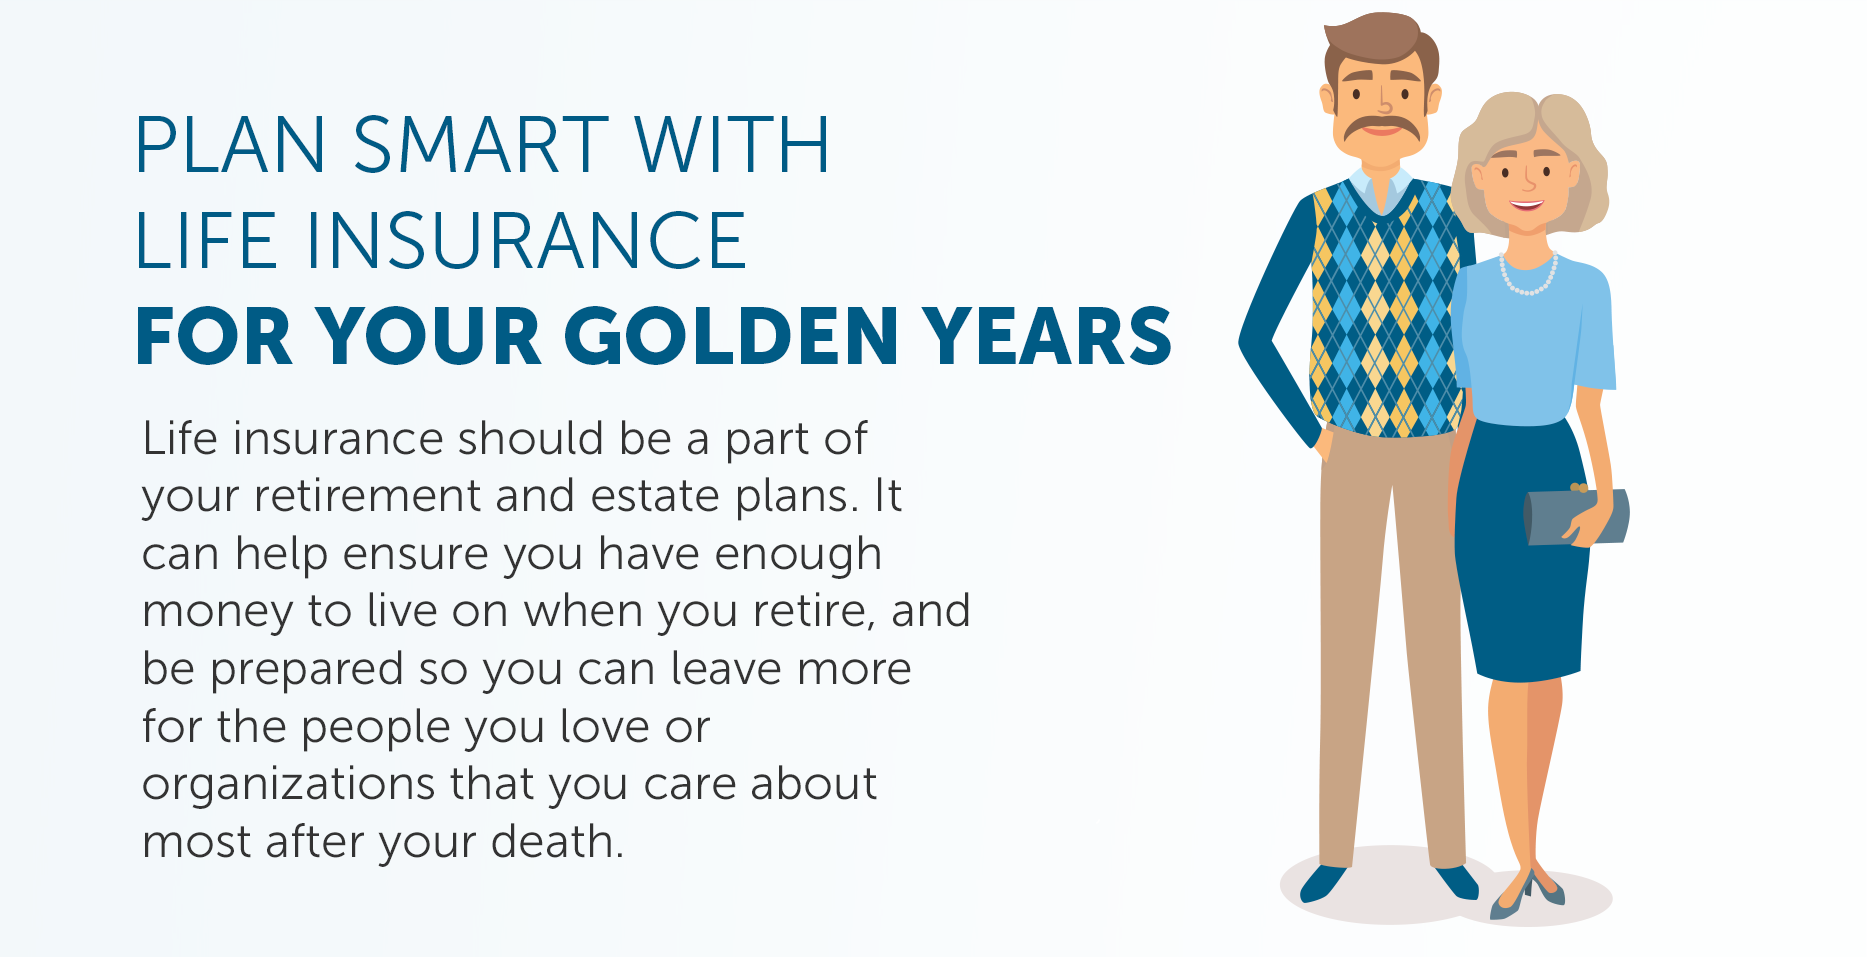 Plan smart with life insurance for your golden years header image